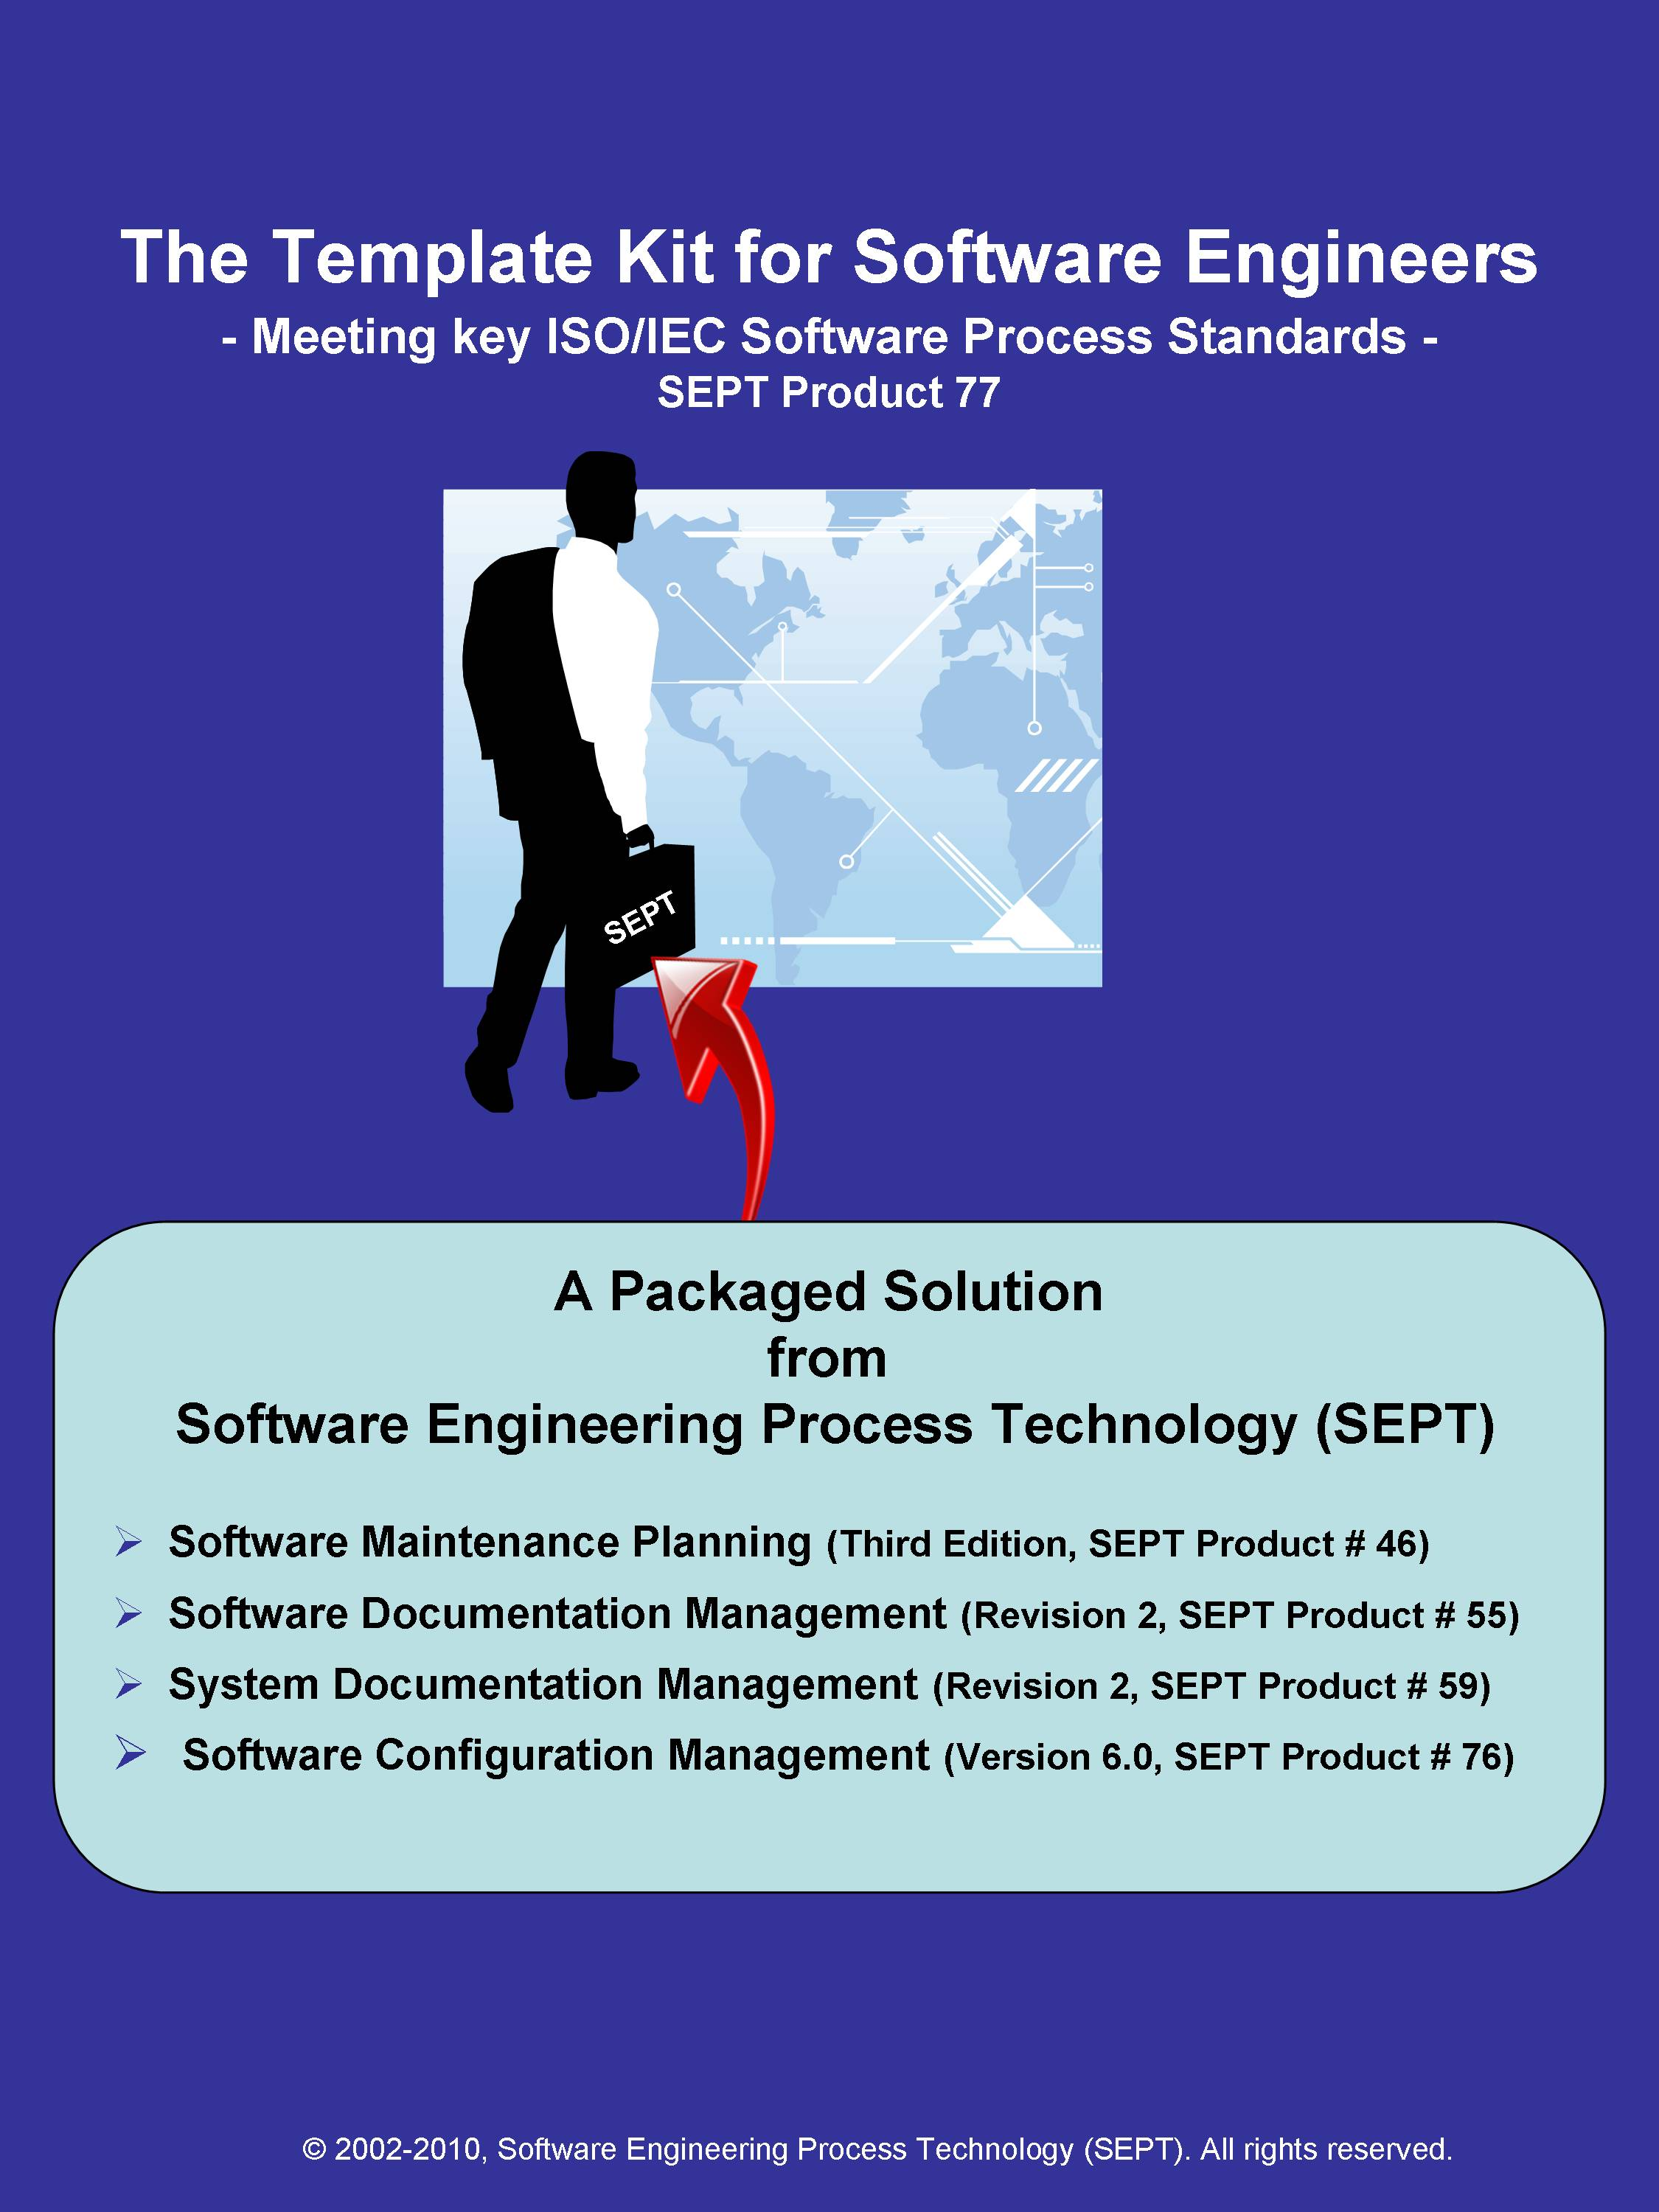 Software Engineering Kit   Composed Of Templates For Key Software  Engineering Process Plans